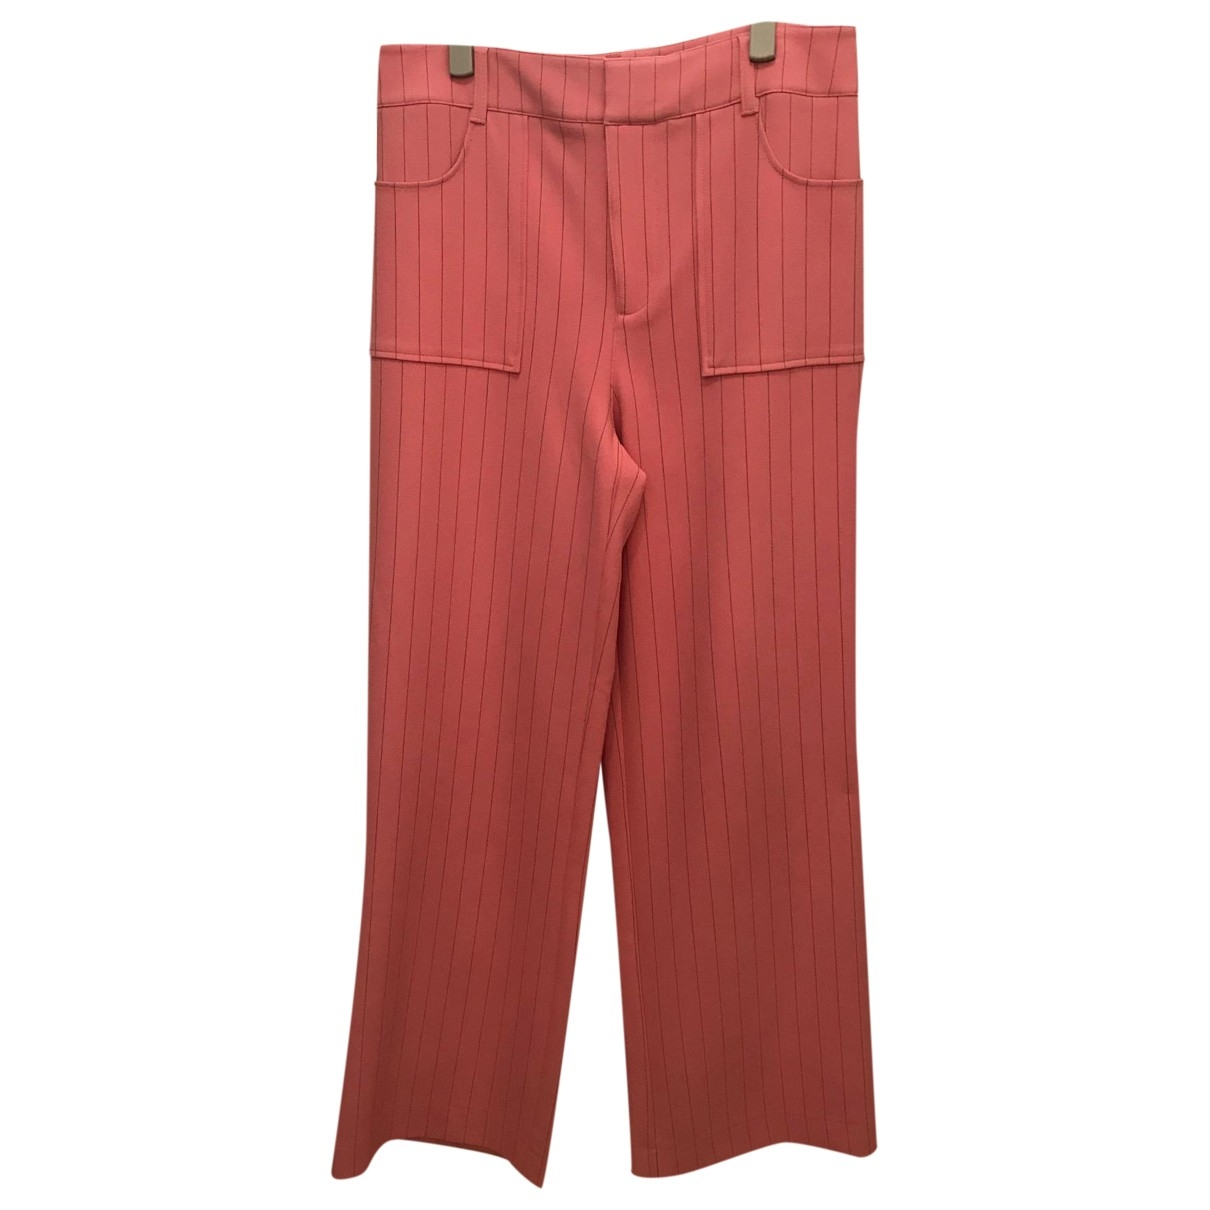 Ganni Spring Summer 2019 Pink Trousers for Women 40 FR